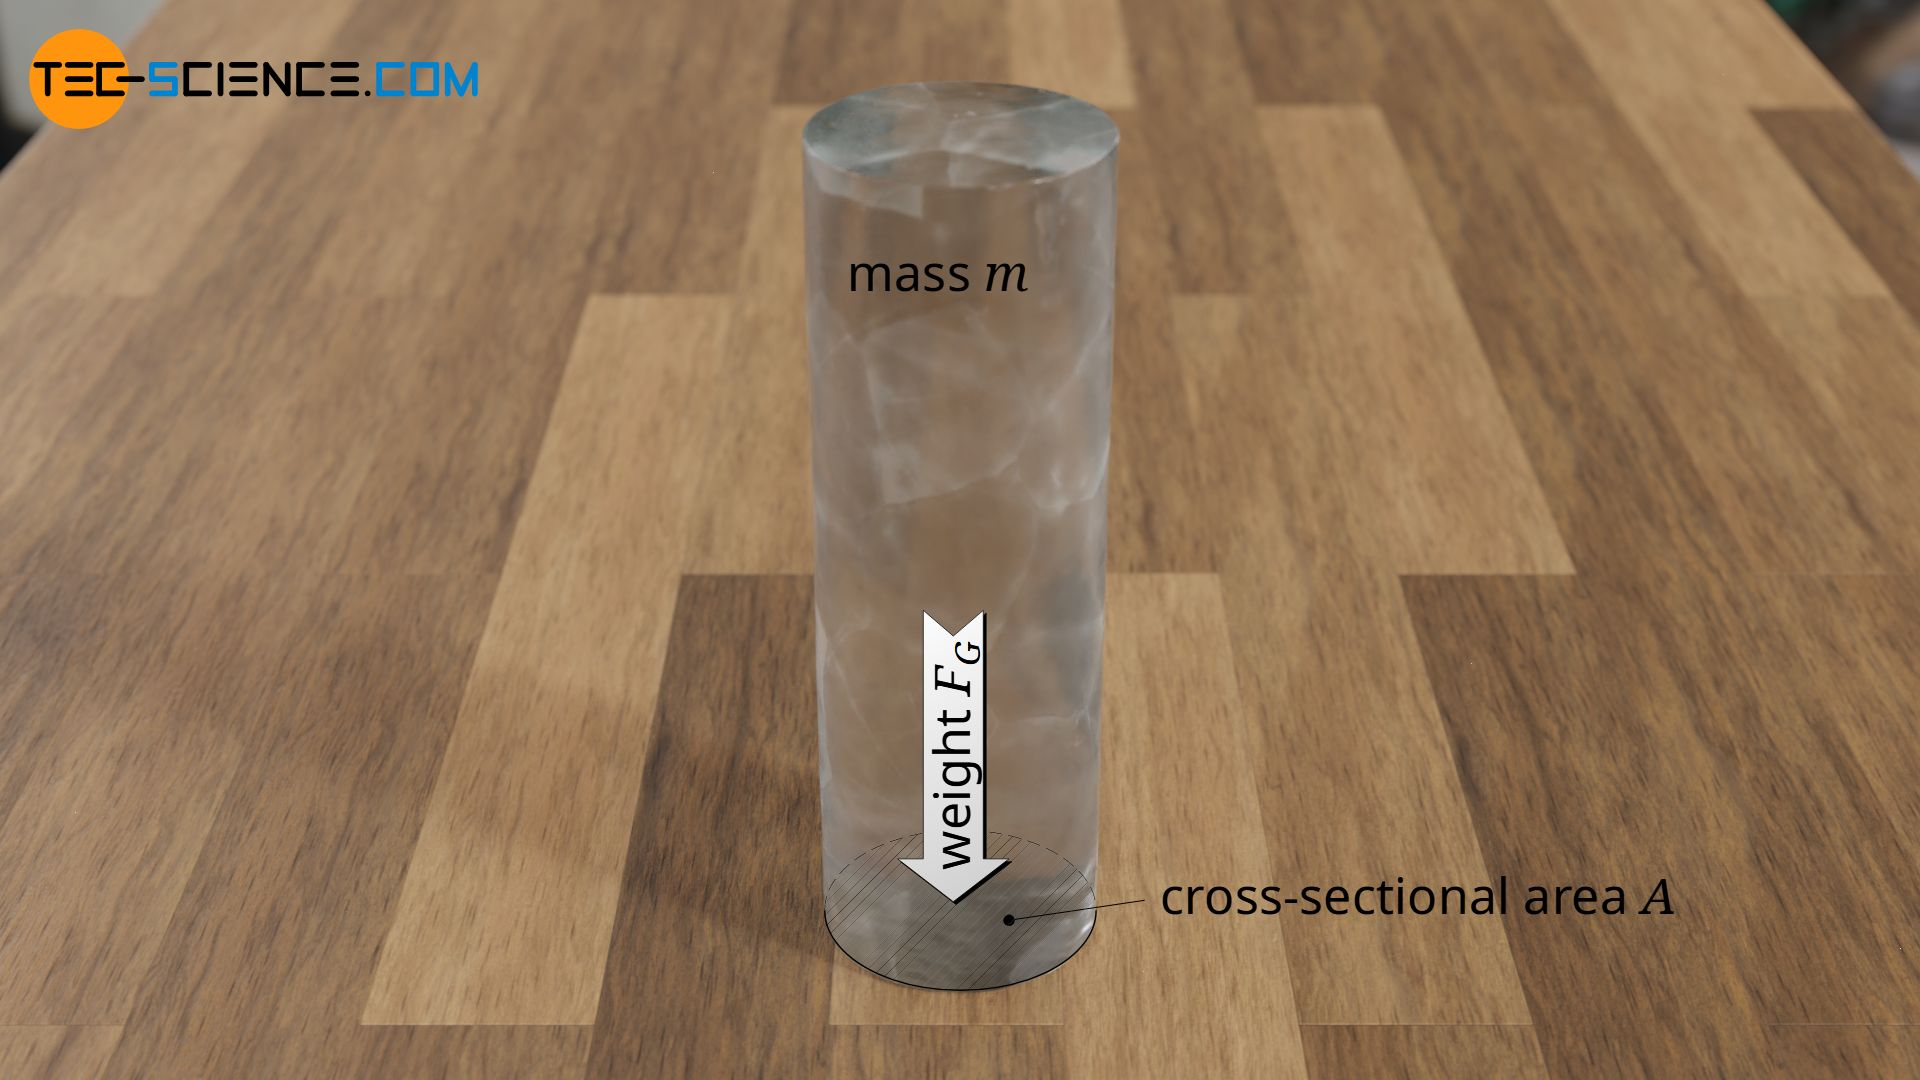 Contact pressure of an ice column